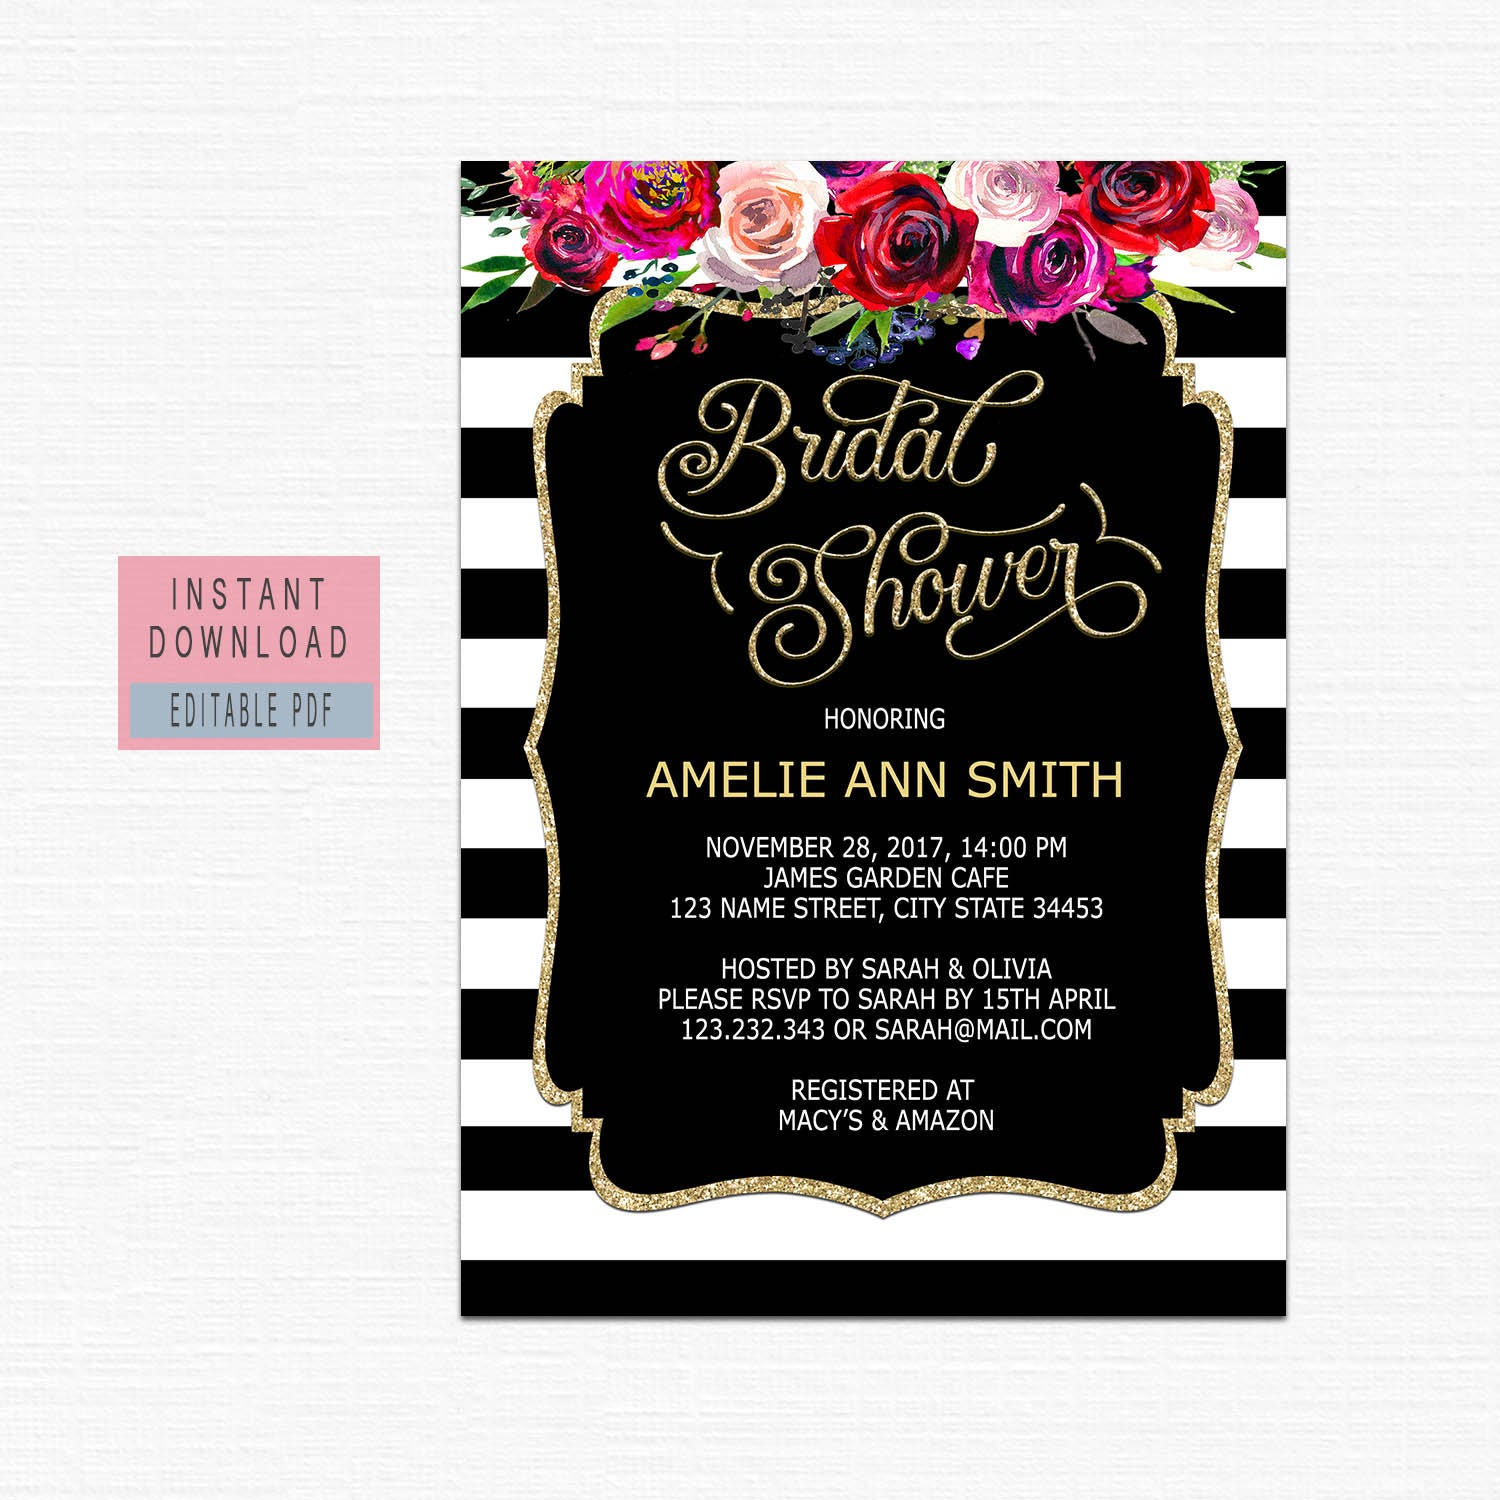 Bridal shower invitation instant download bridal shower invites bridal shower invitation instant download bridal shower invites floral black gold bridal shower invitation filmwisefo